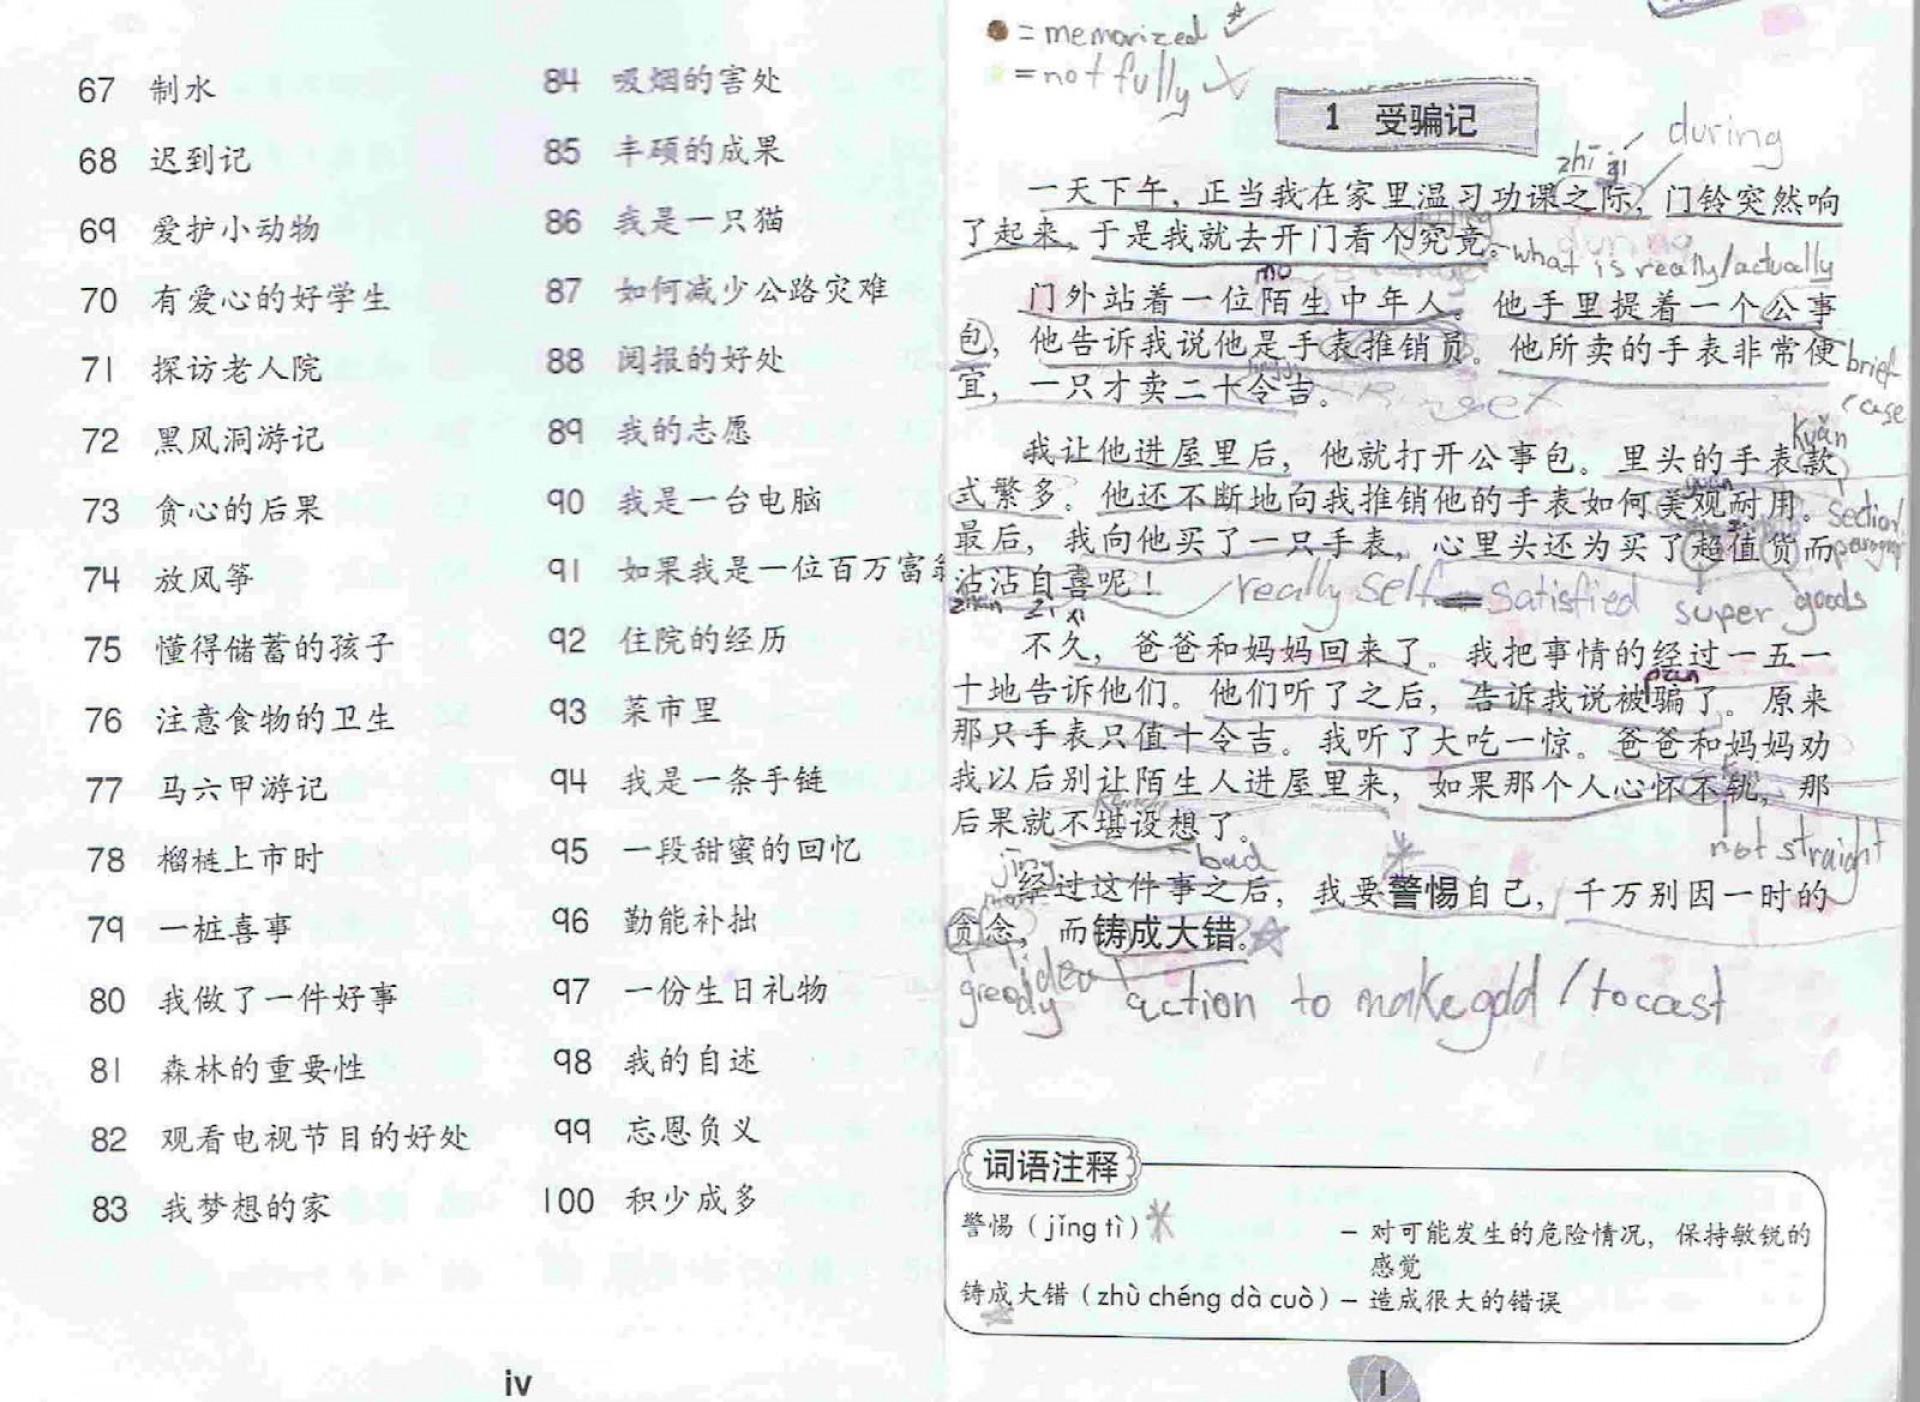 002 Essays On Reading Chinese Essay Sample And Learning Writing Competition Singapore Ccf23082012 00001 New Year Language Service Wedding Paper Structure Amazing Letter Format Topics 1920